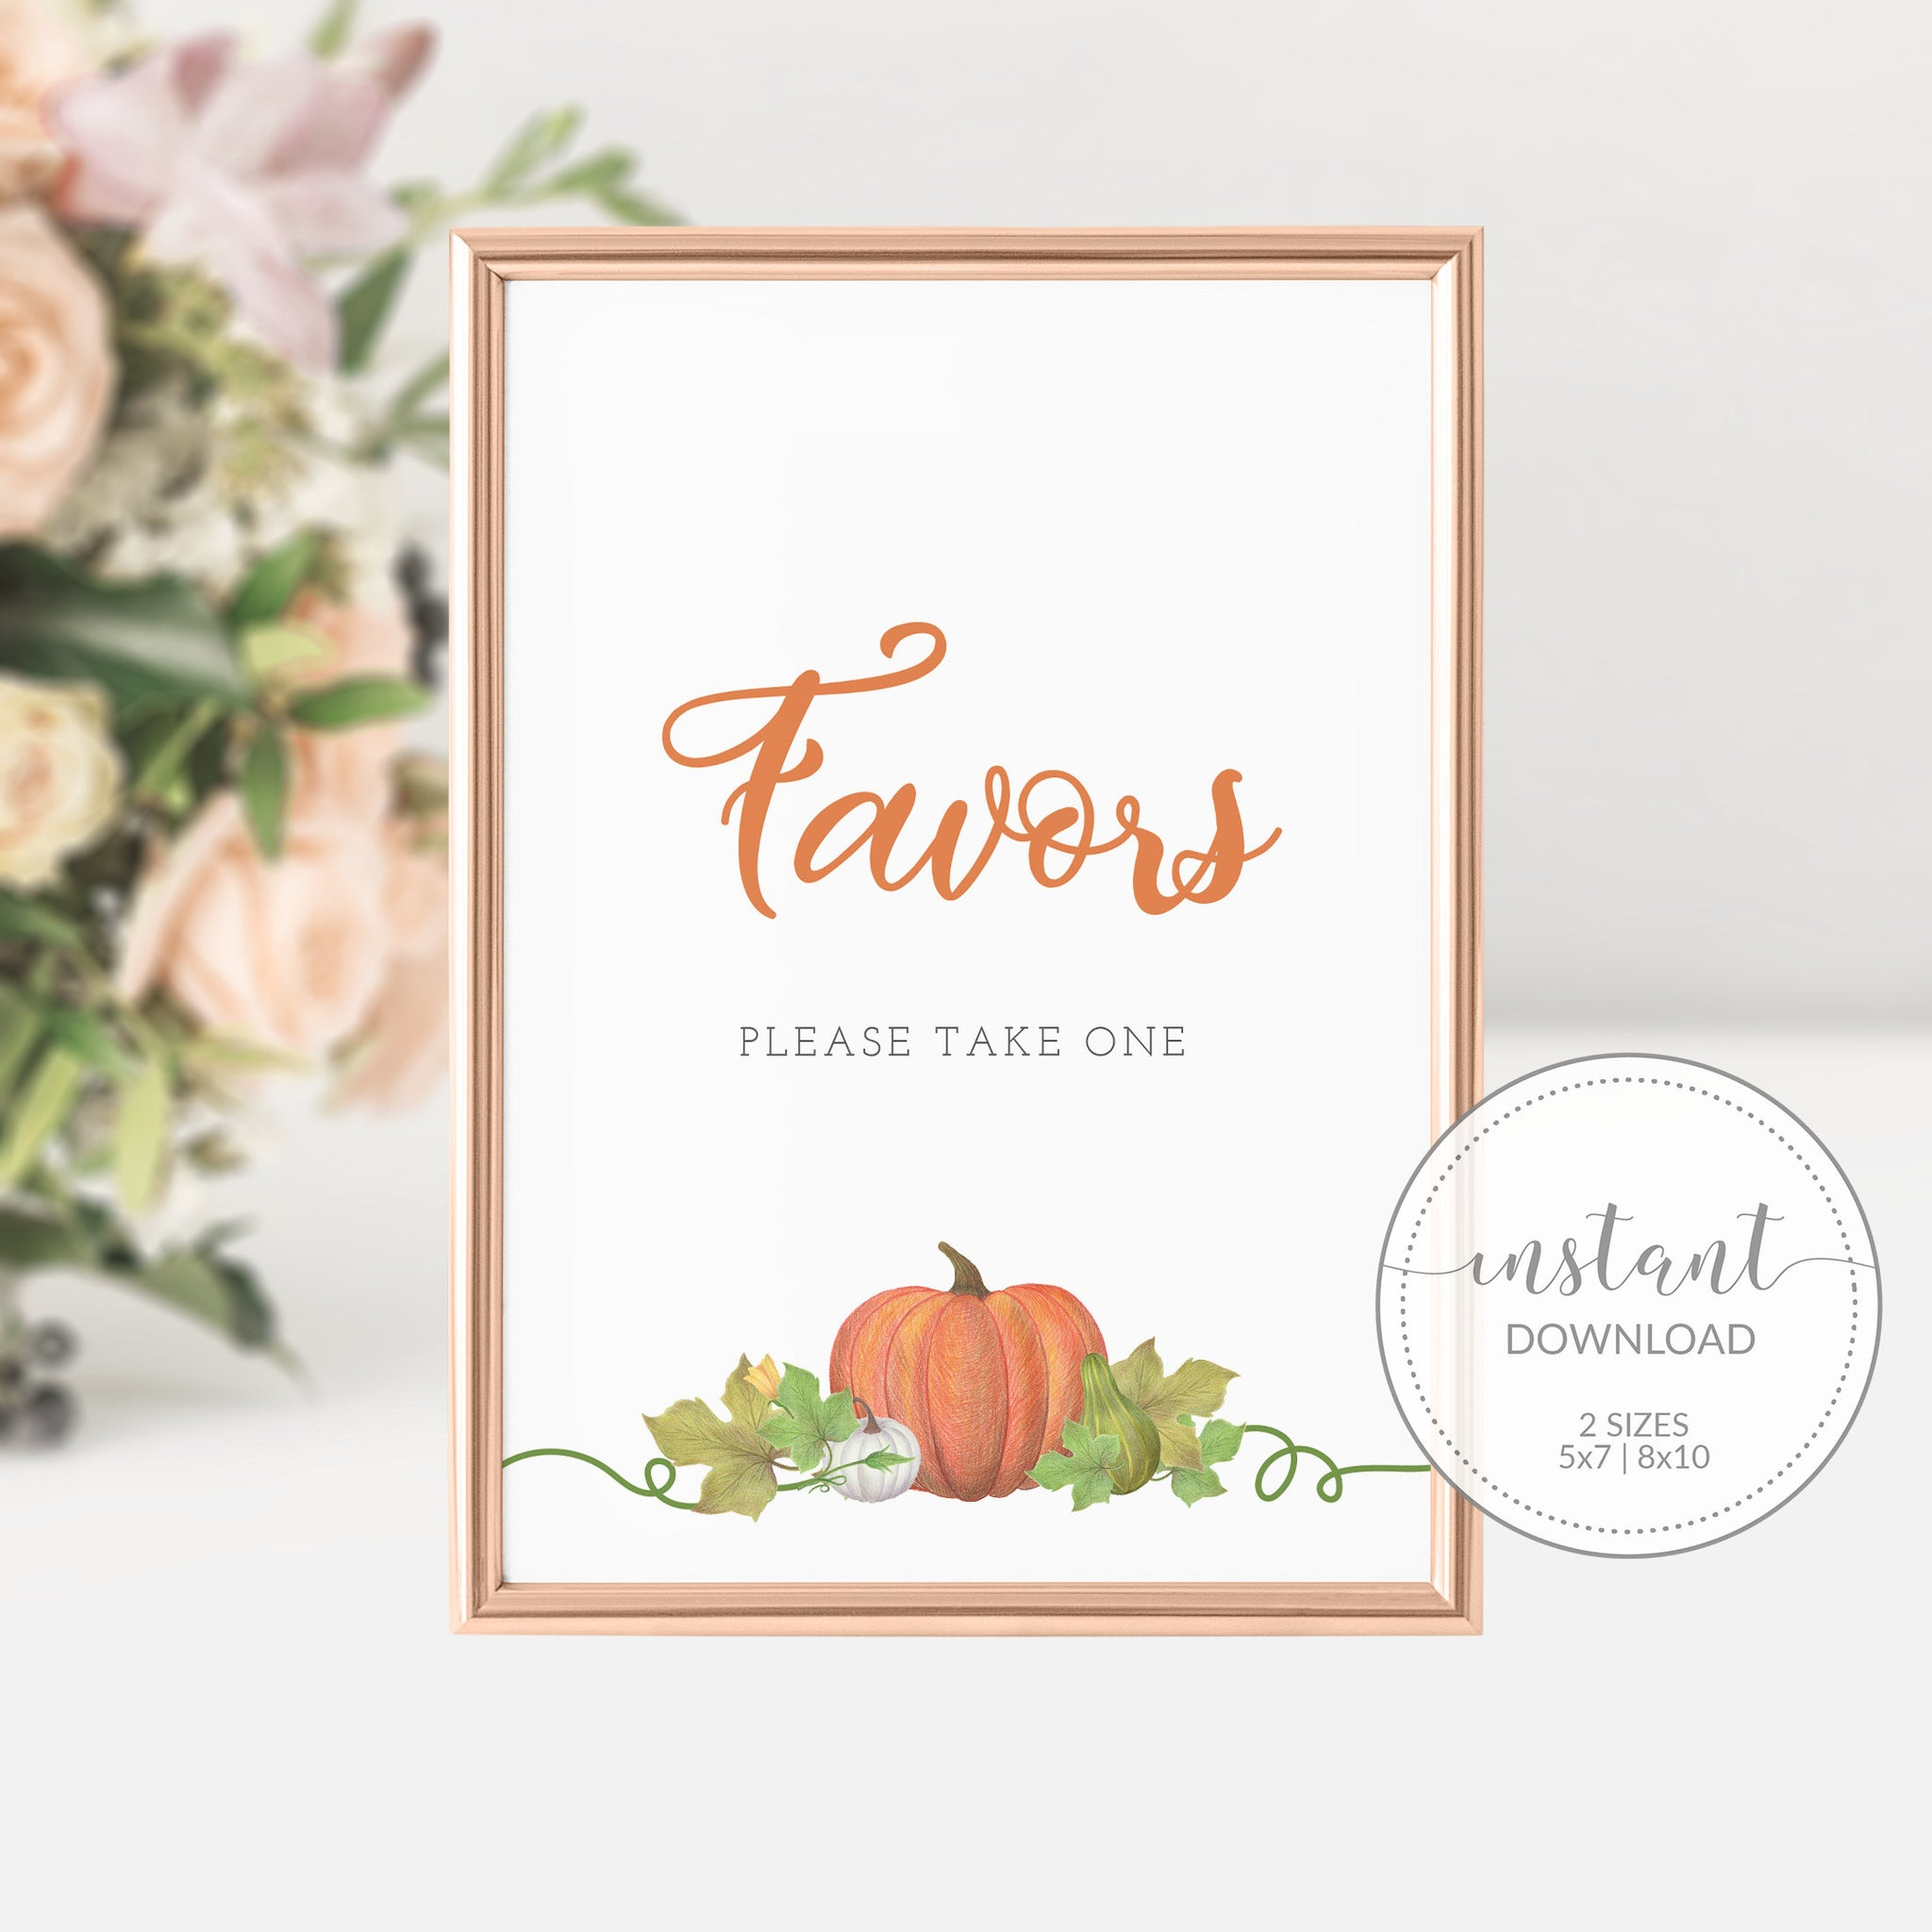 Little Pumpkin Baby Shower Favors Sign, Little Pumpkin Baby Shower Decorations, INSTANT DOWNLOAD - HP100 - @PlumPolkaDot